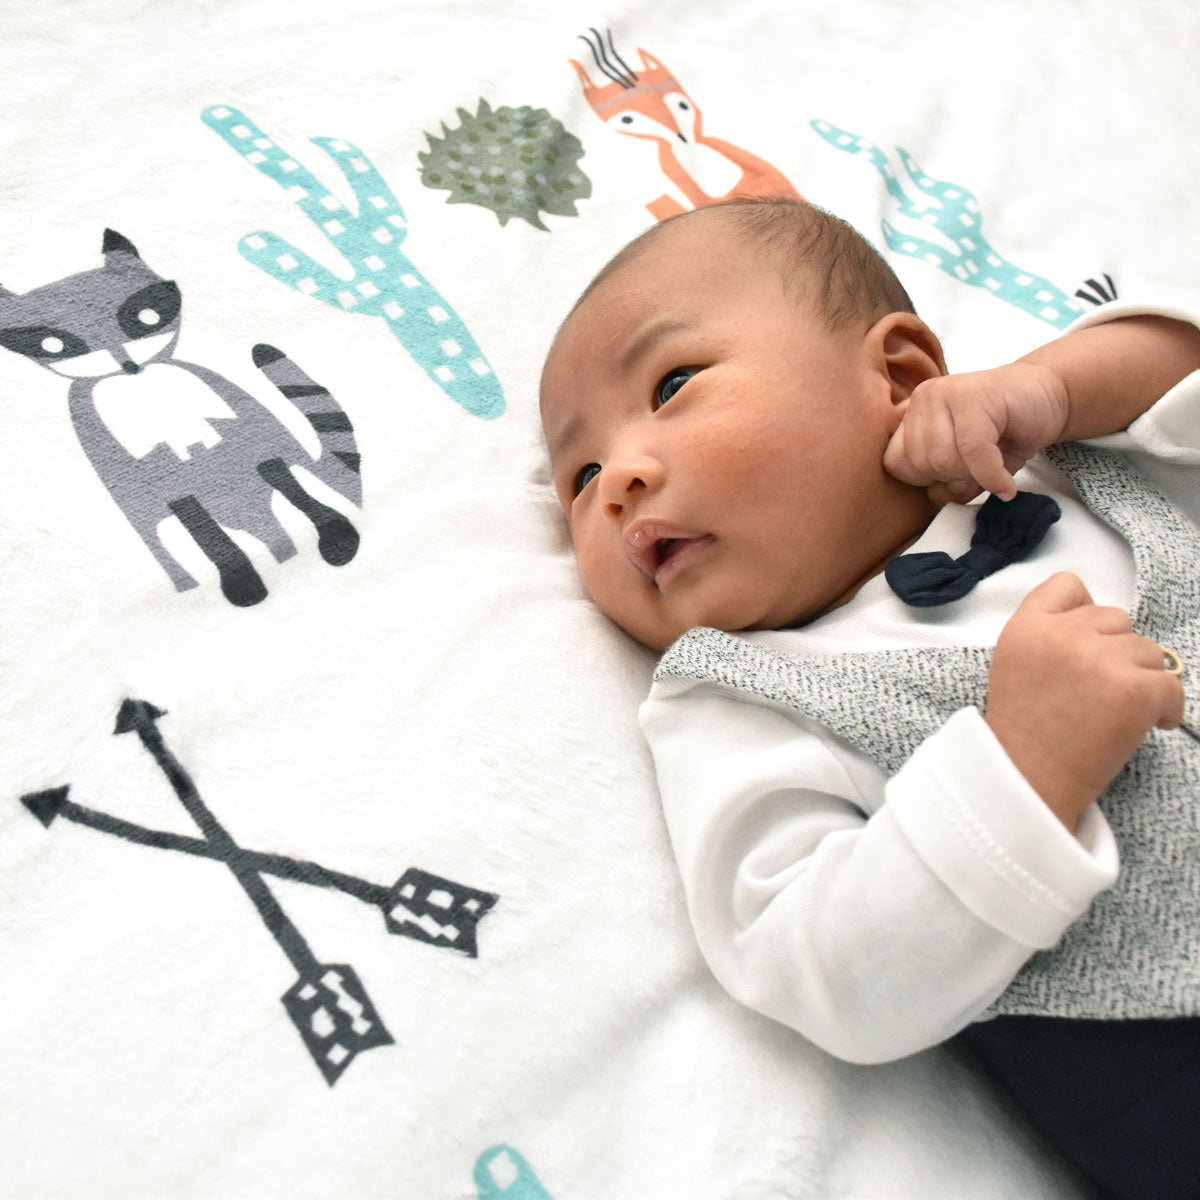 fleece milestone blanket for newborn photography growth blanket baby keepsake woodland creatures fox raccoon